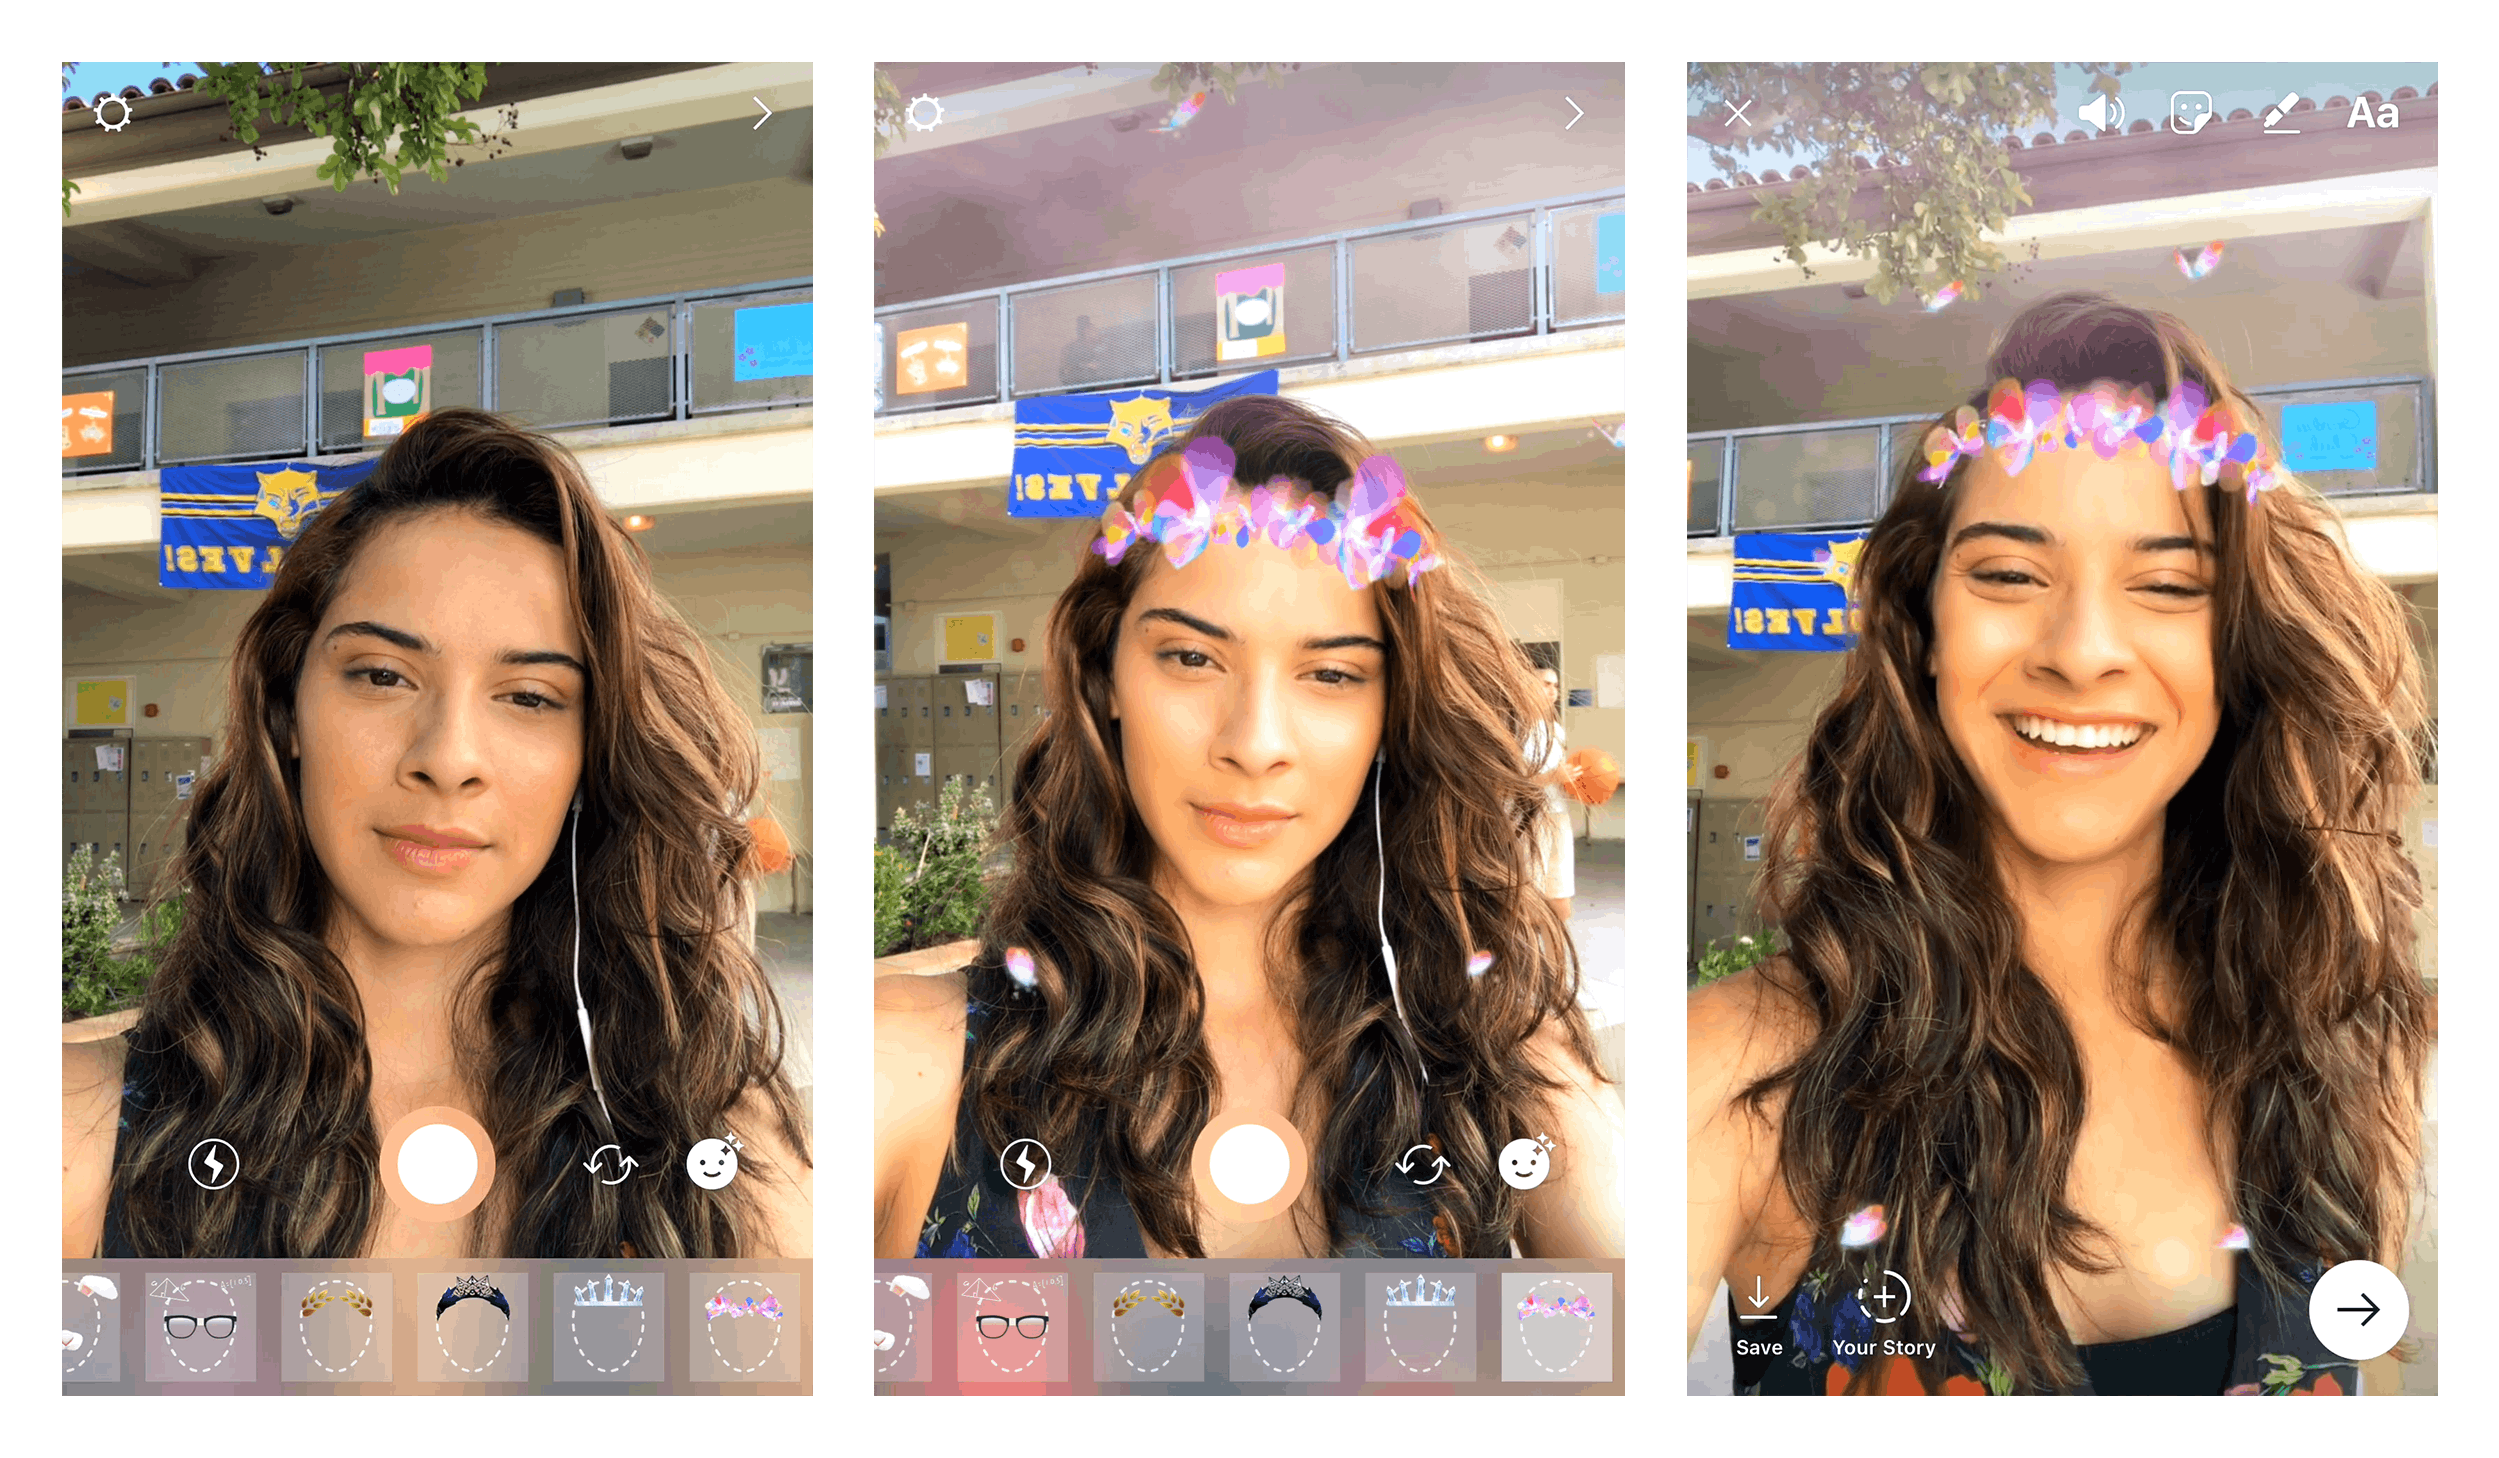 Tiny, Incredibly Sad Voice: 'Hey, Instagram Has Selfie Filters, Too!'